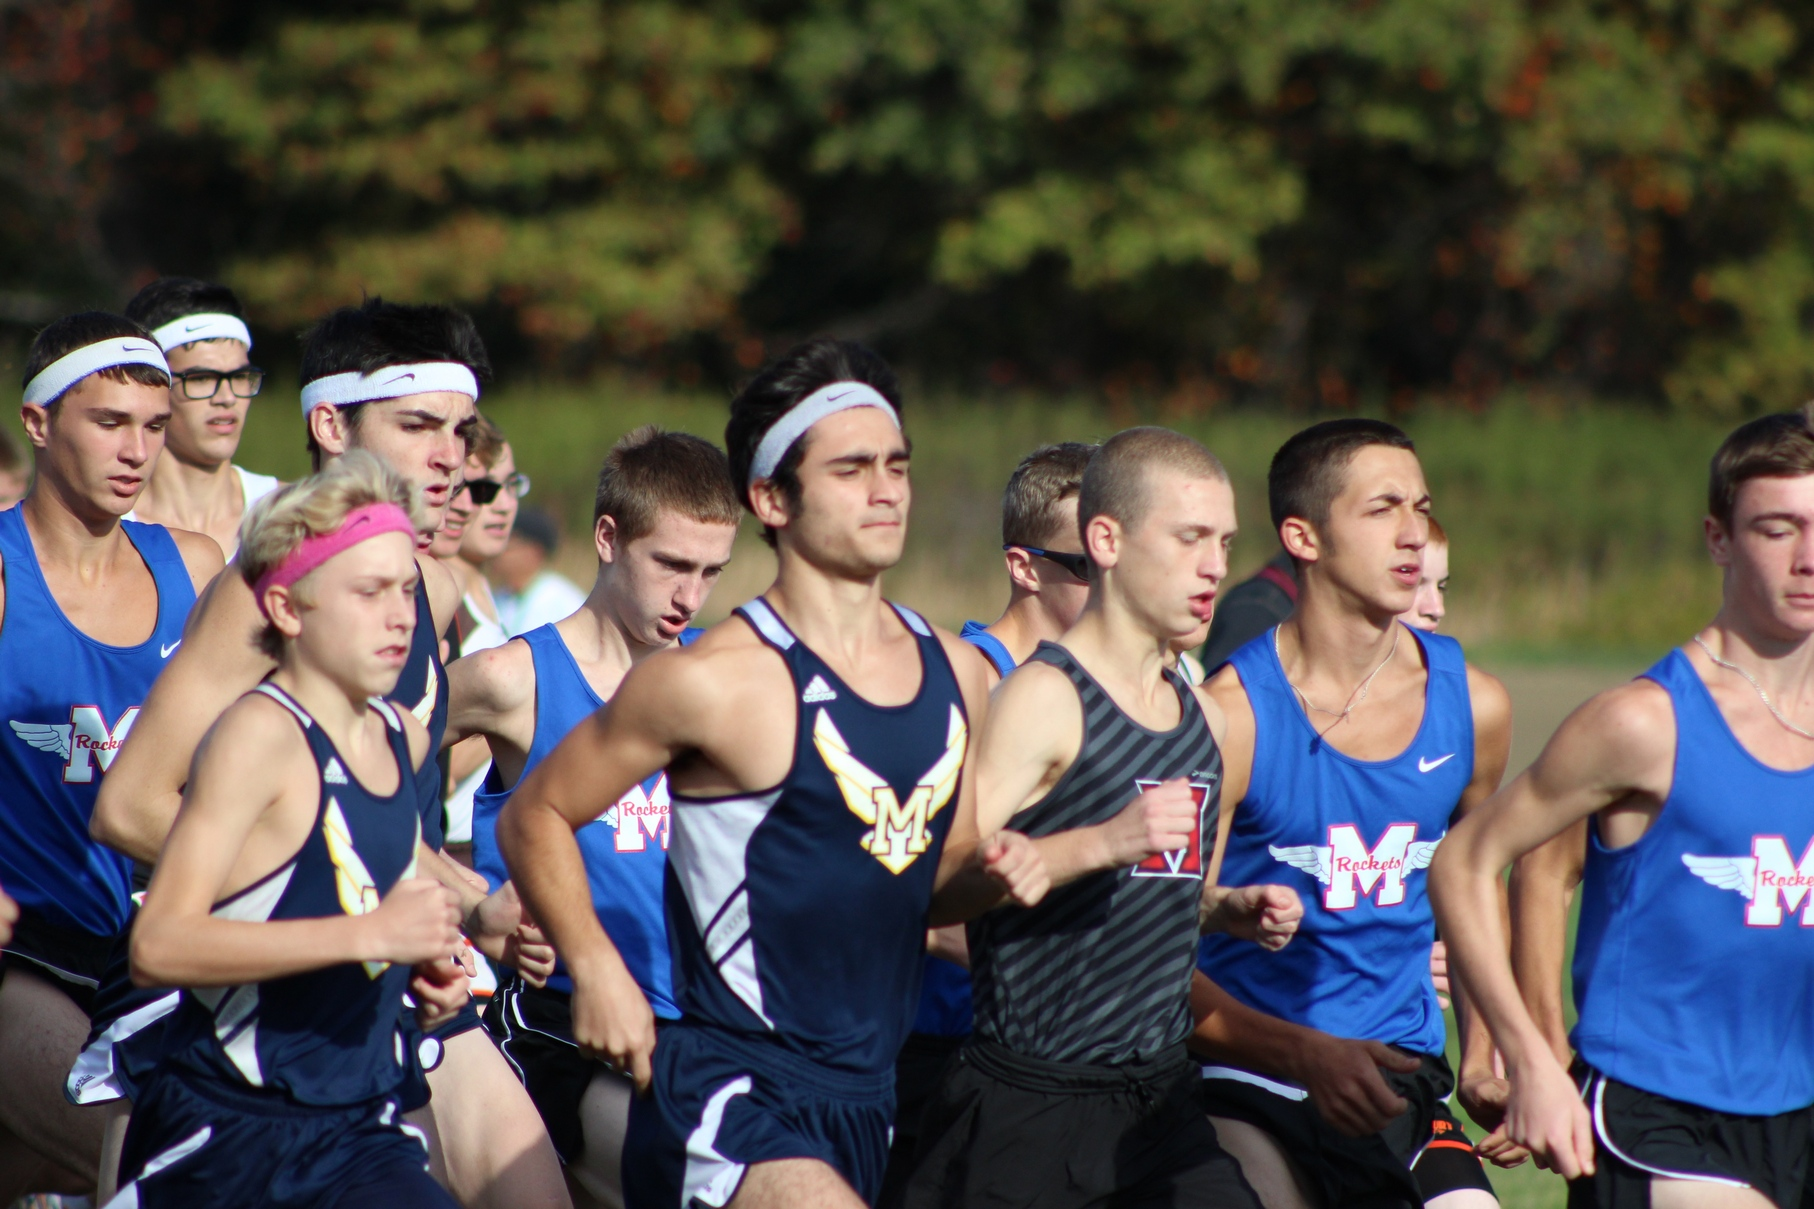 2015 LEGENDS XC MEET